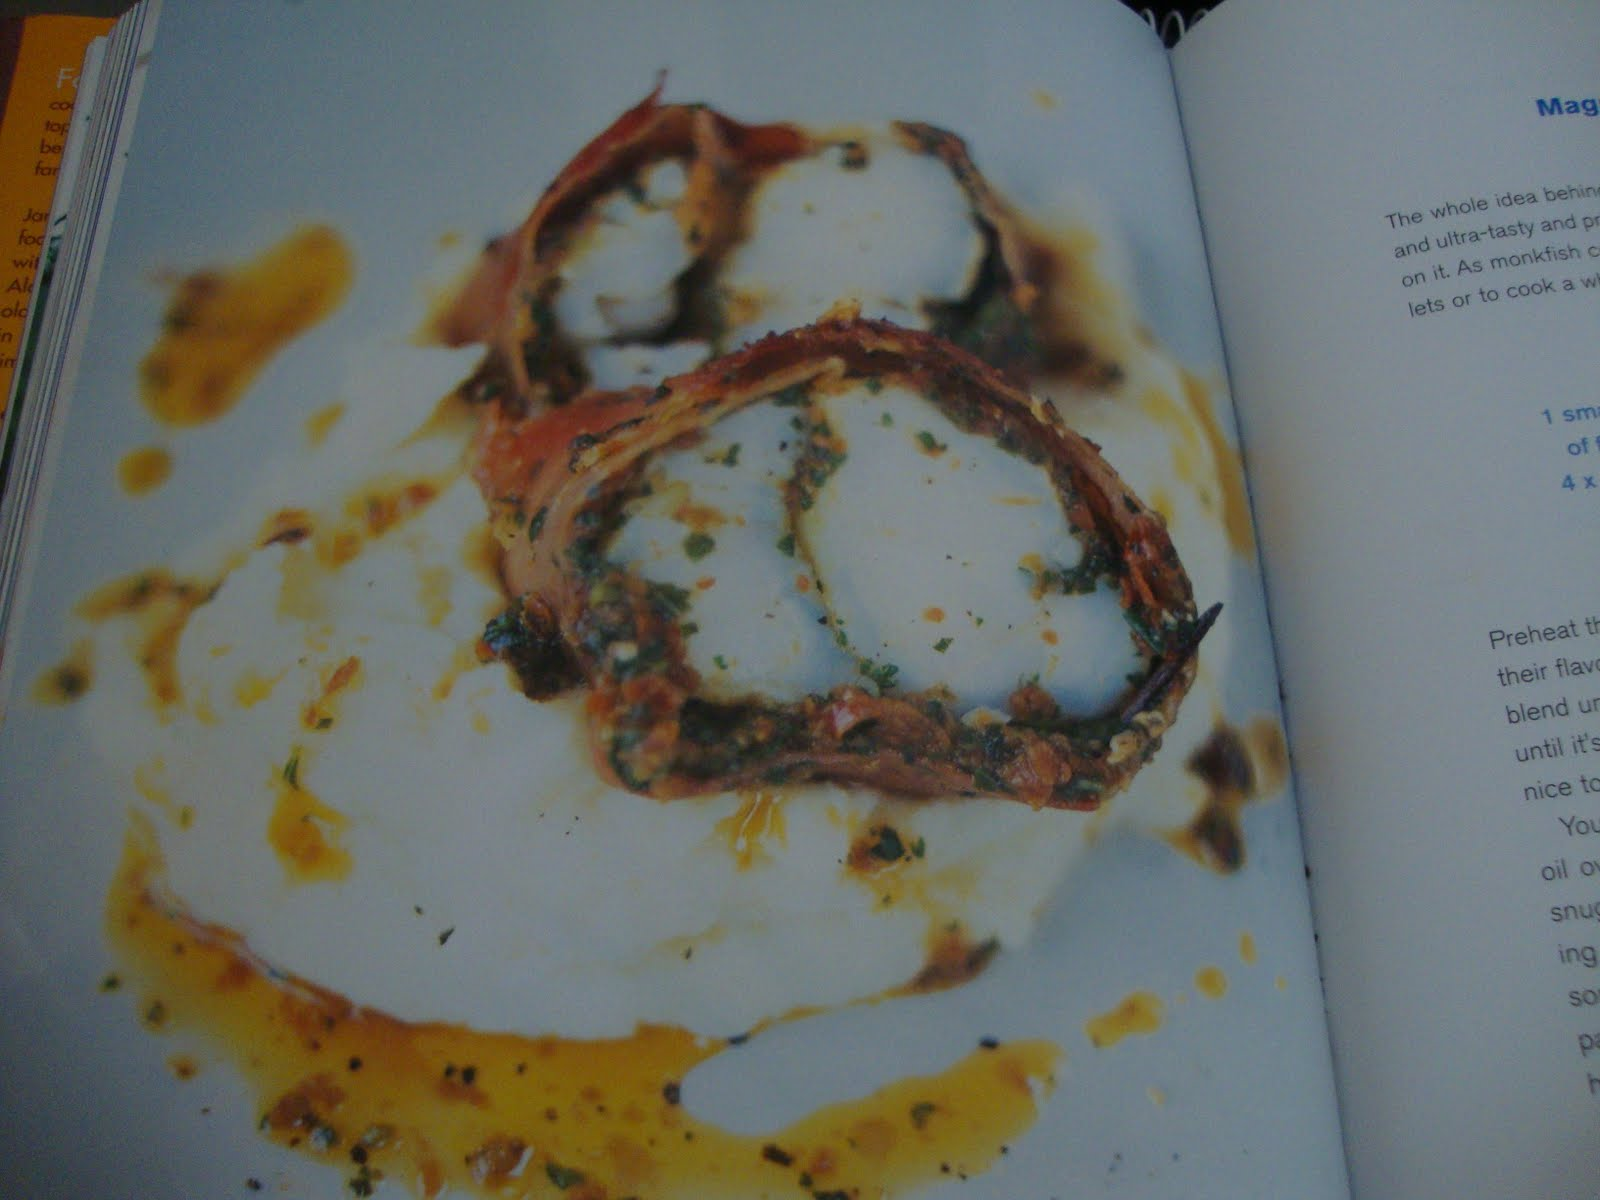 Eat out eat in magnificent roasted monkfish not monkfish for Monkfish and parma ham recipe